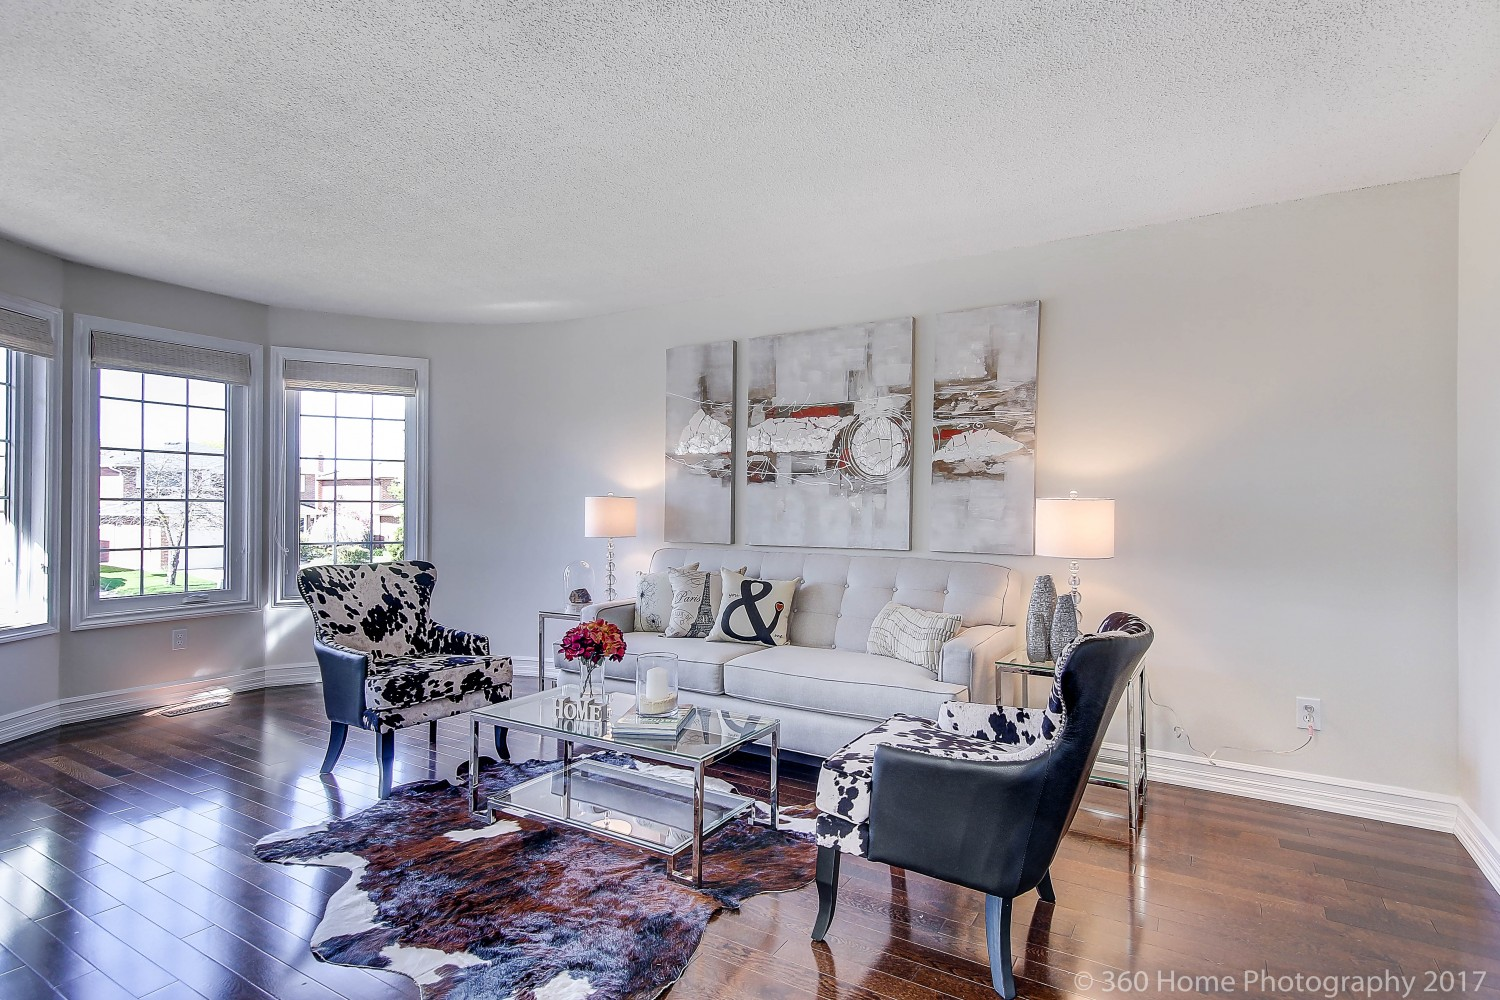 Organize and Stage Your Home with Professional Home Stager and Organizer Nina Dorian | The Home Staging Show Podcast Season 6 Episode 1 | Before & After 16.jpg